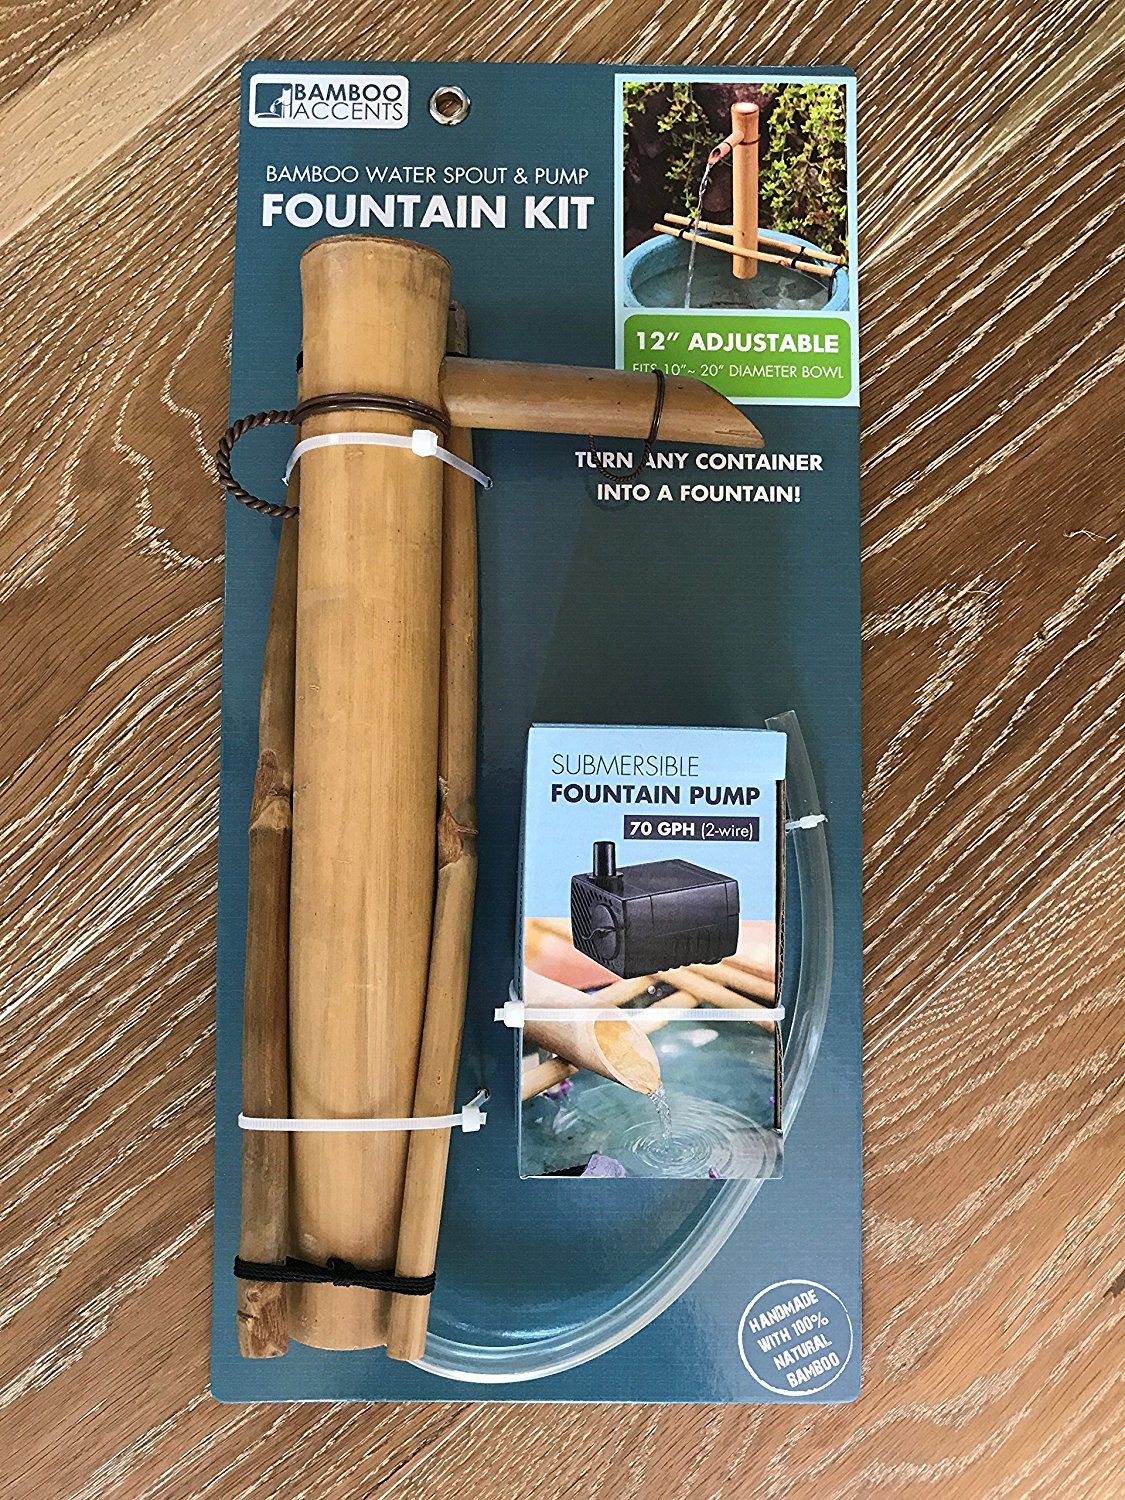 "Bamboo Accents 12"" Adjustable Spout with Branch Arms and Pump Kit"